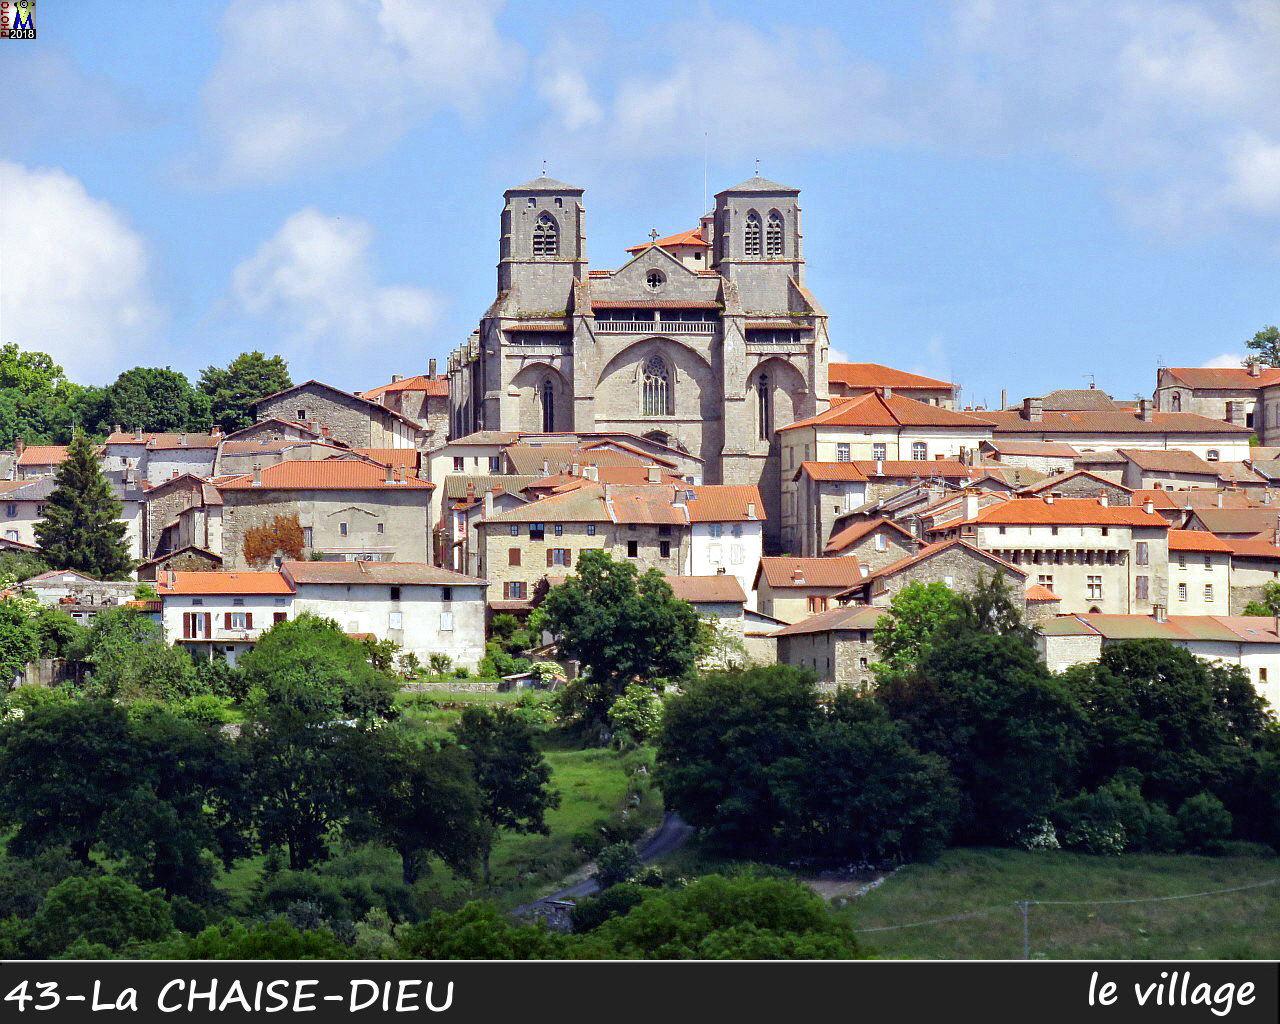 43CHAISE-DIEU_village_102.jpg